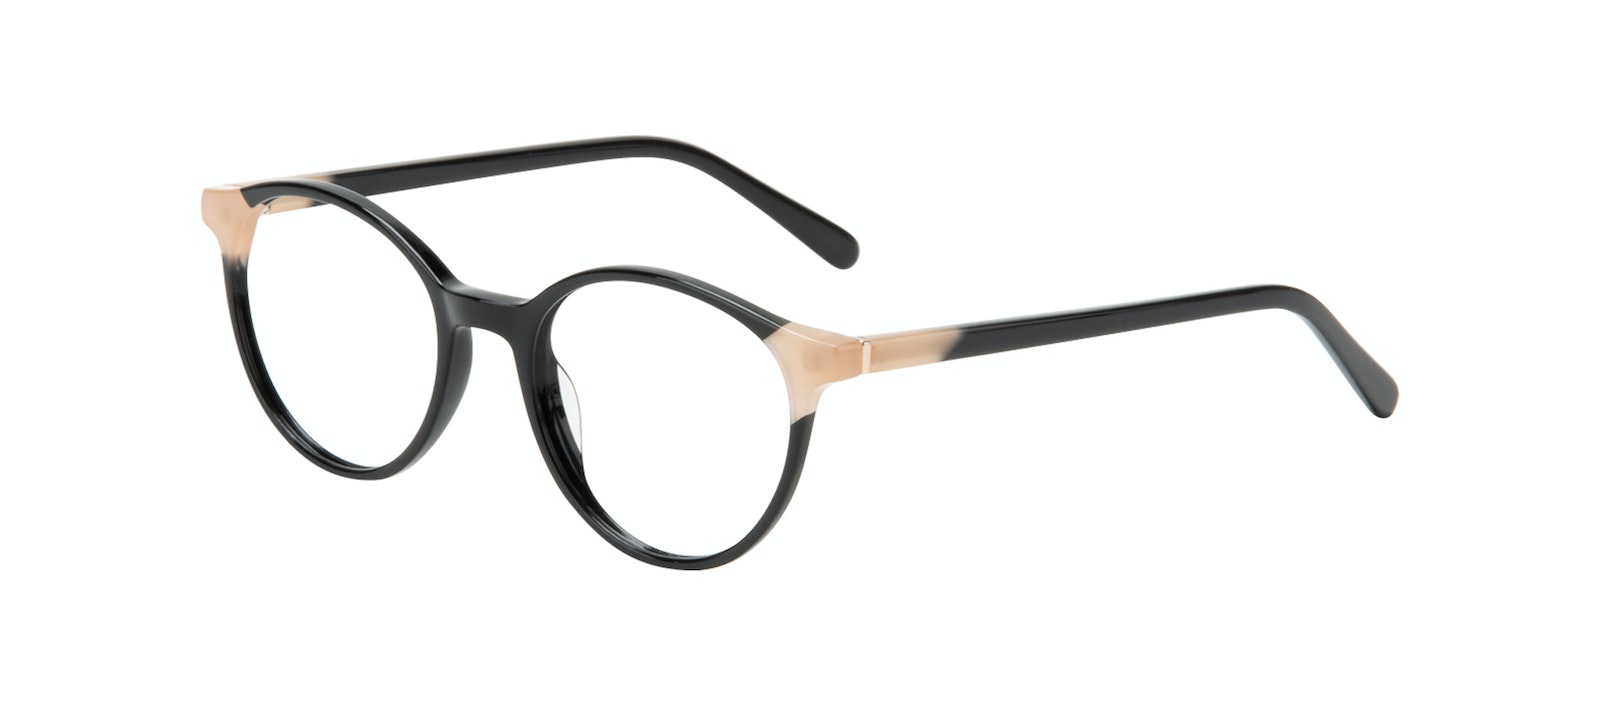 Affordable Fashion Glasses Round Eyeglasses Women Vivid Black Ivory Tilt